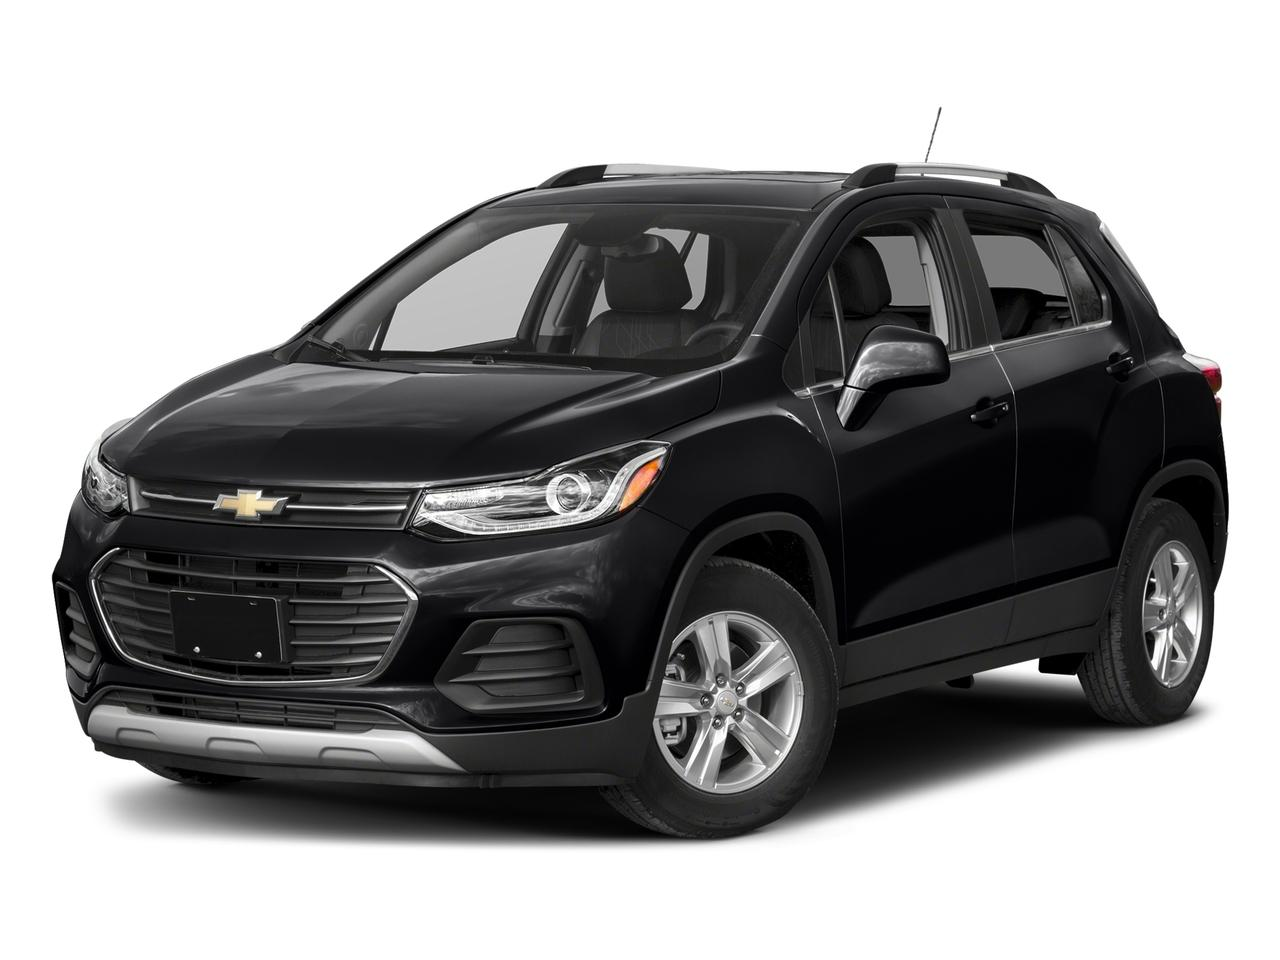 2017 Chevrolet Trax Vehicle Photo in Henderson, NV 89014